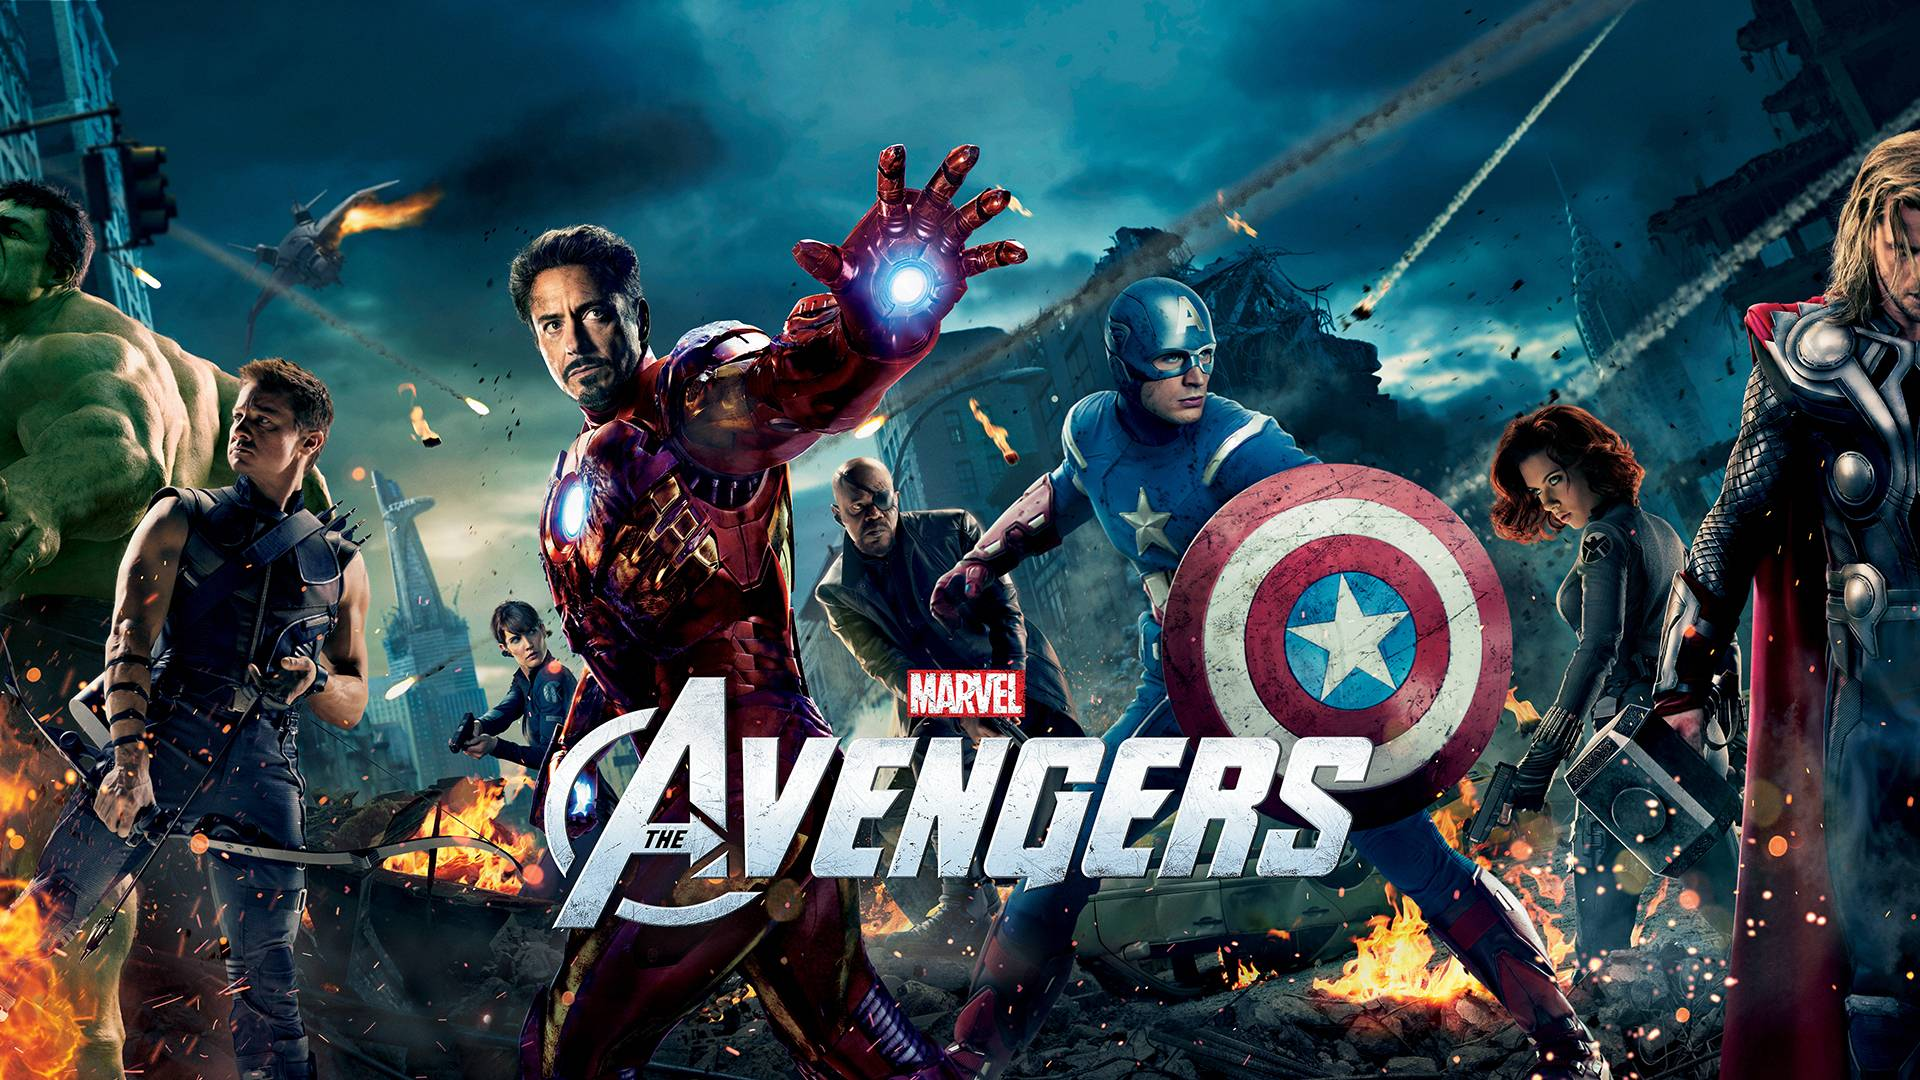 The Avengers 2012 Wallpapers Top Free The Avengers 2012